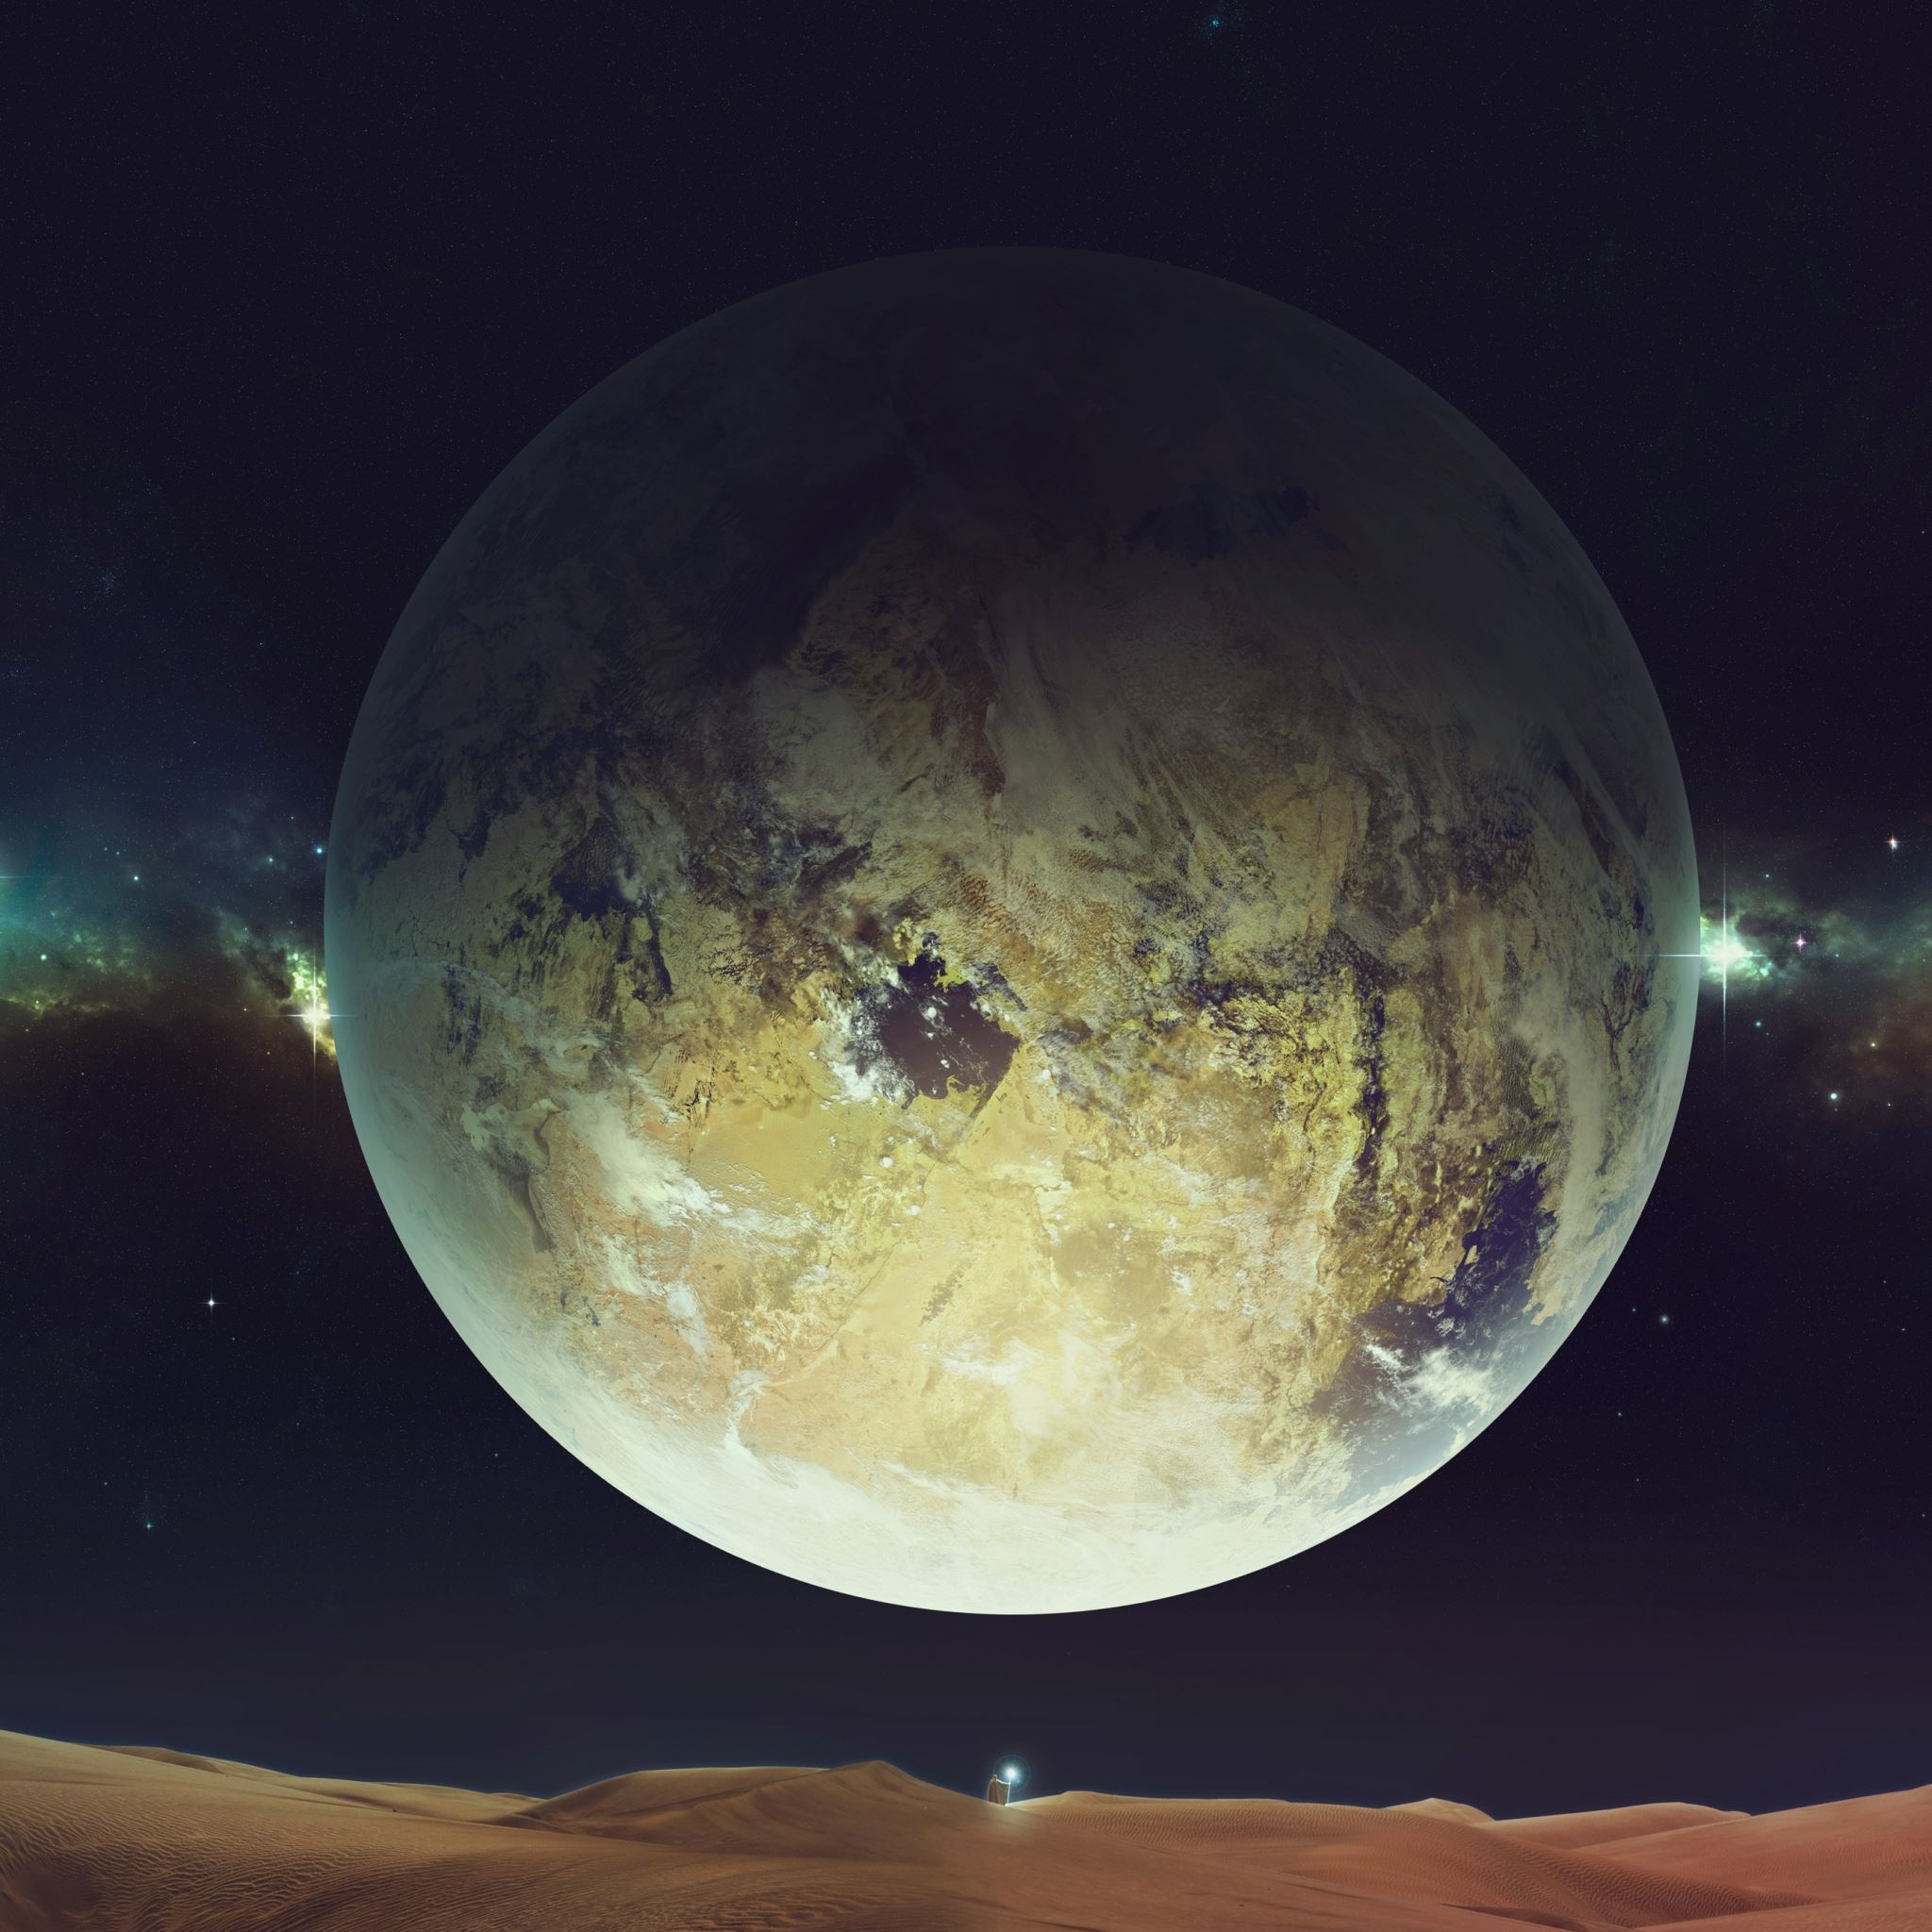 Space Planet Sky Fantasy Landscape iPad Air wallpaper